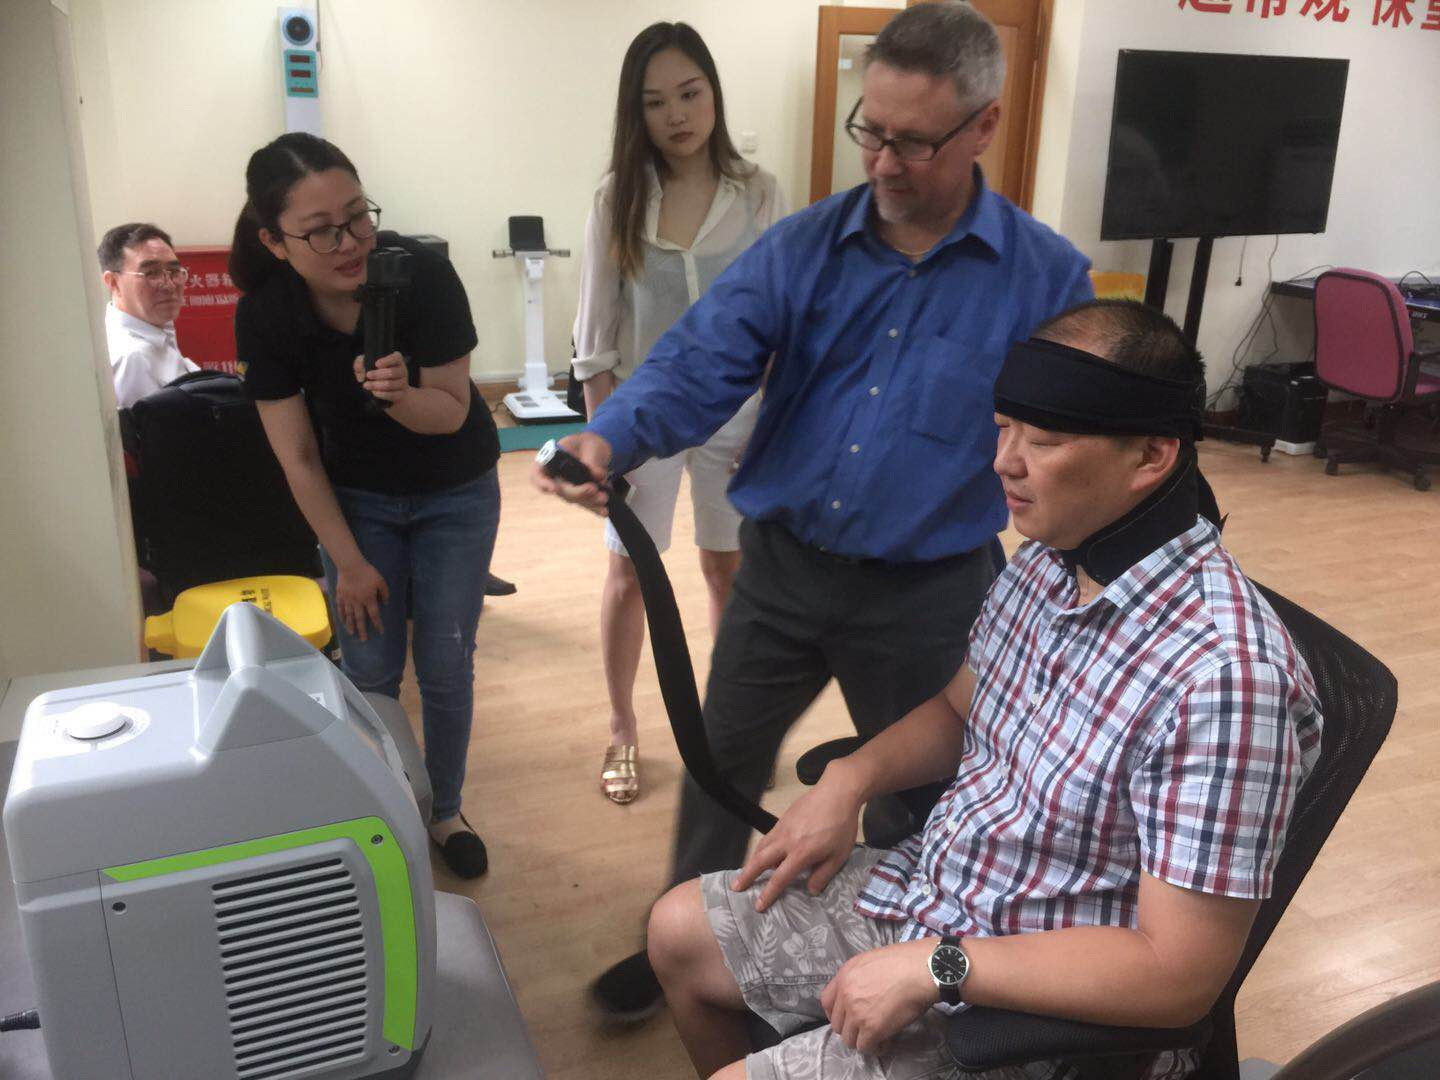 US Authentic Trading - Medical Devices - China Medical Display Center - VR Education